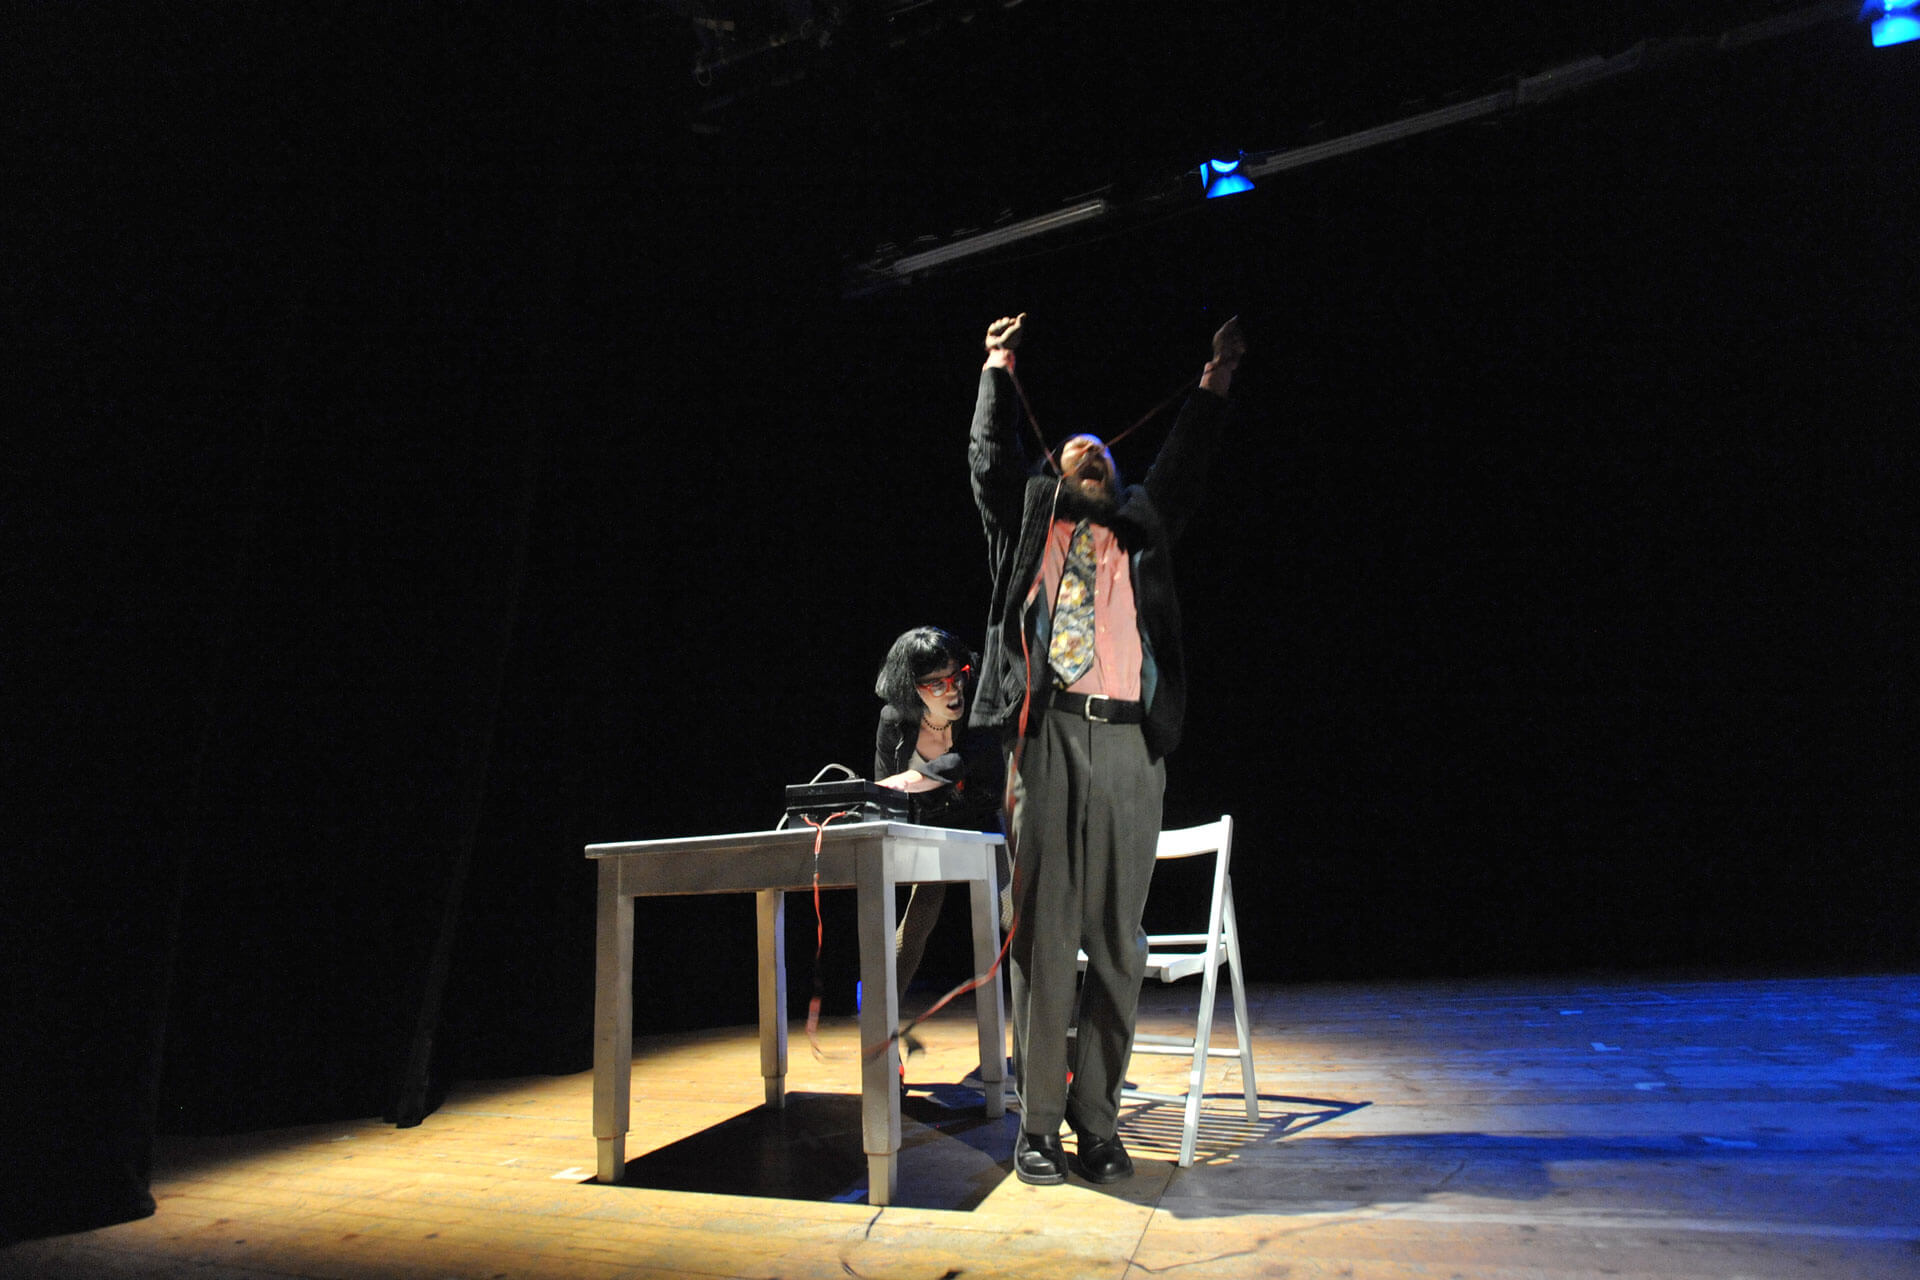 scuola-di-teatro-colli-tribute-to-pinter-2013-8